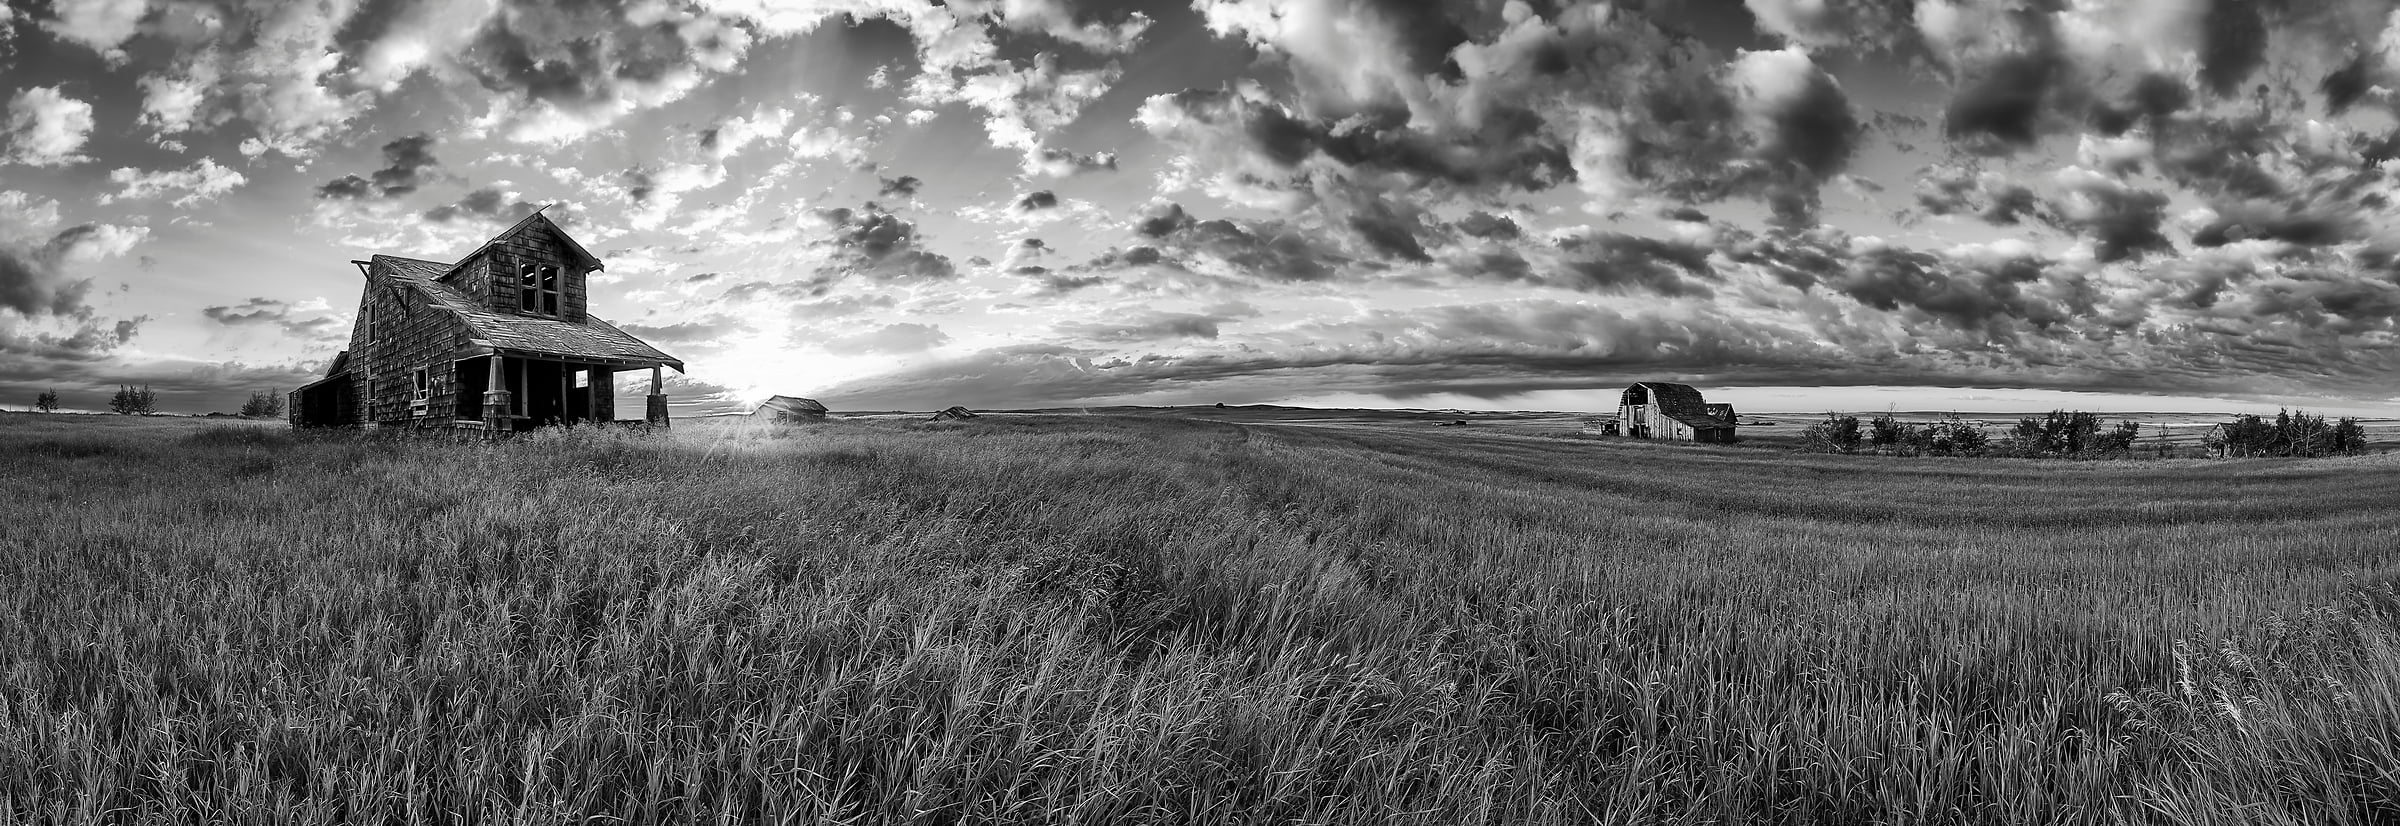 A very high resolution, large-format VAST photo of farmland, grasslands, the prairie, and an old abandoned house; fine art black and white landscape photo created at sunrise by Scott Dimond on the Great Plains in Alberta, Canada